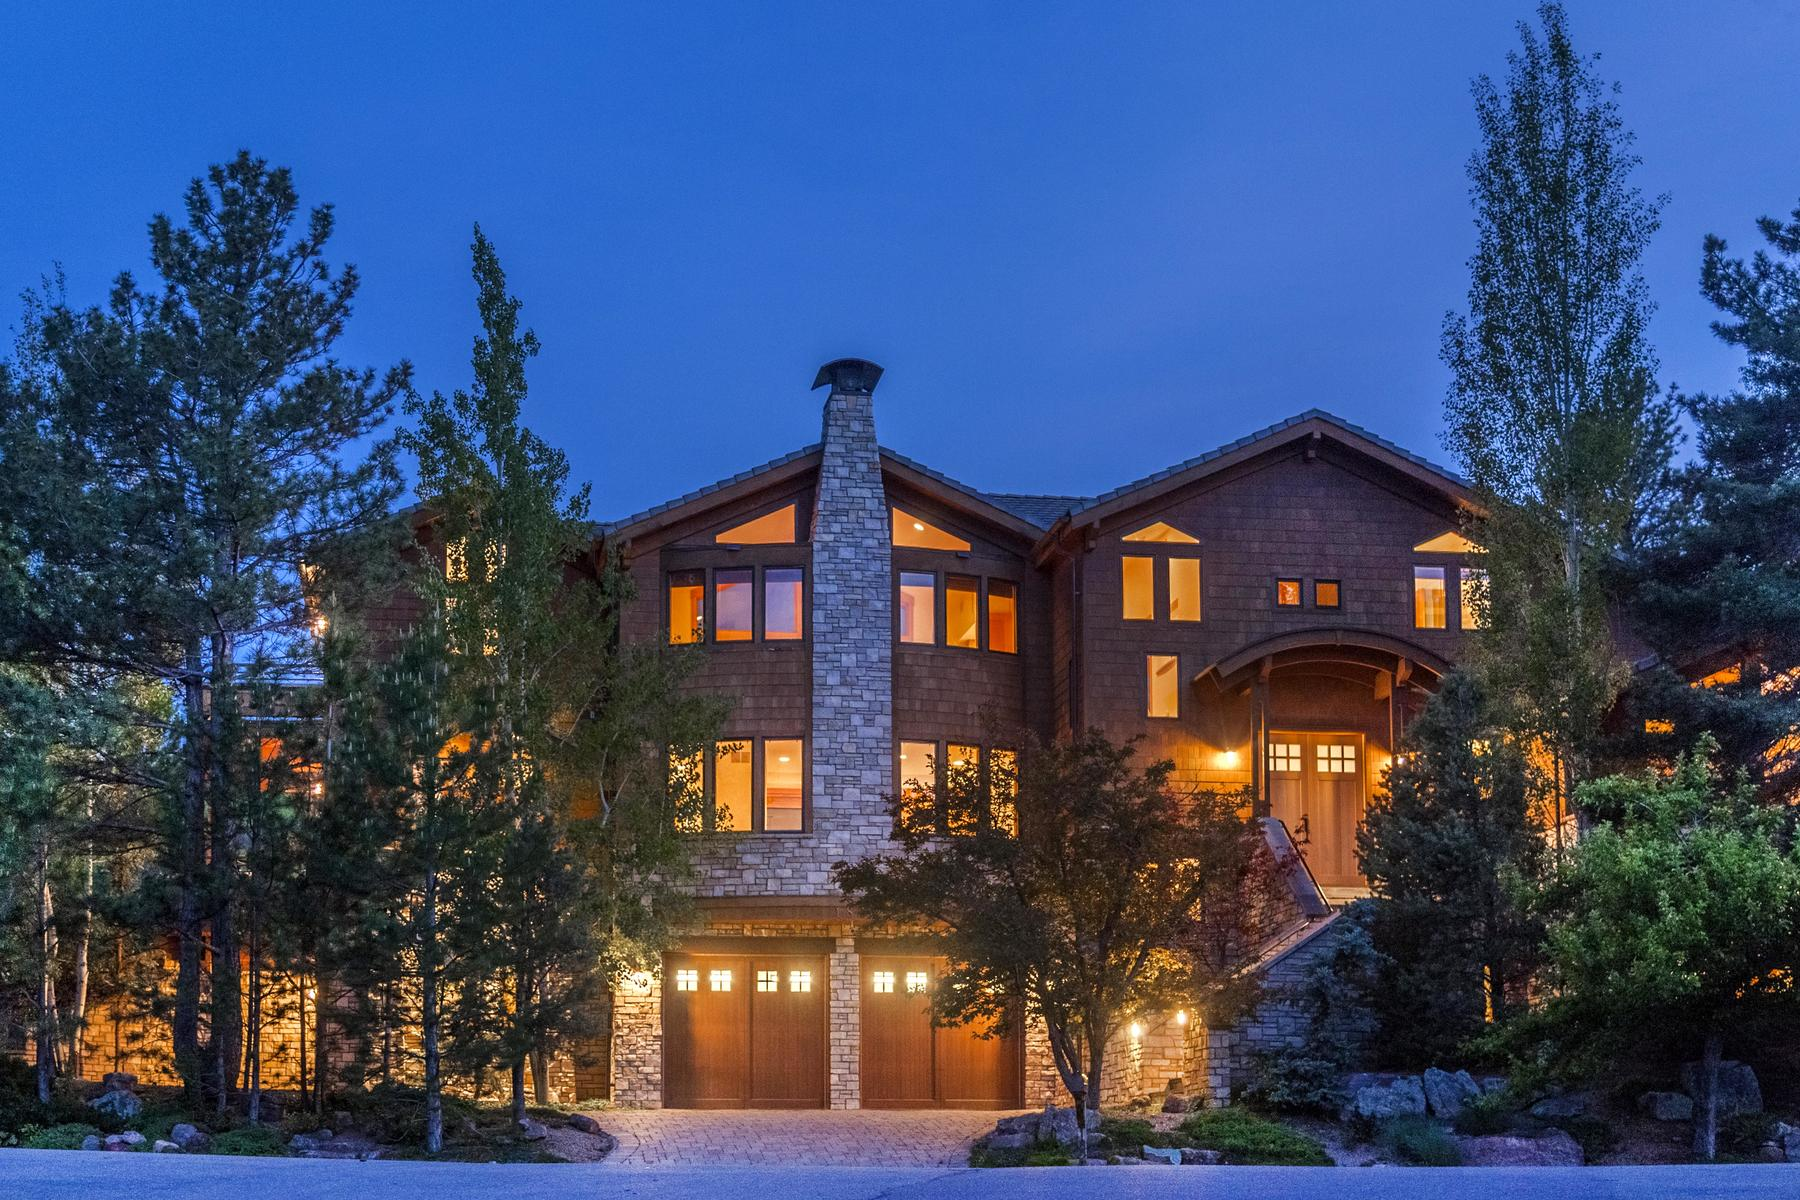 Single Family Home for Sale at Masterpiece Backing to Chautauqua Trails 1820 Deer Valley Rd Boulder, Colorado 80305 United States